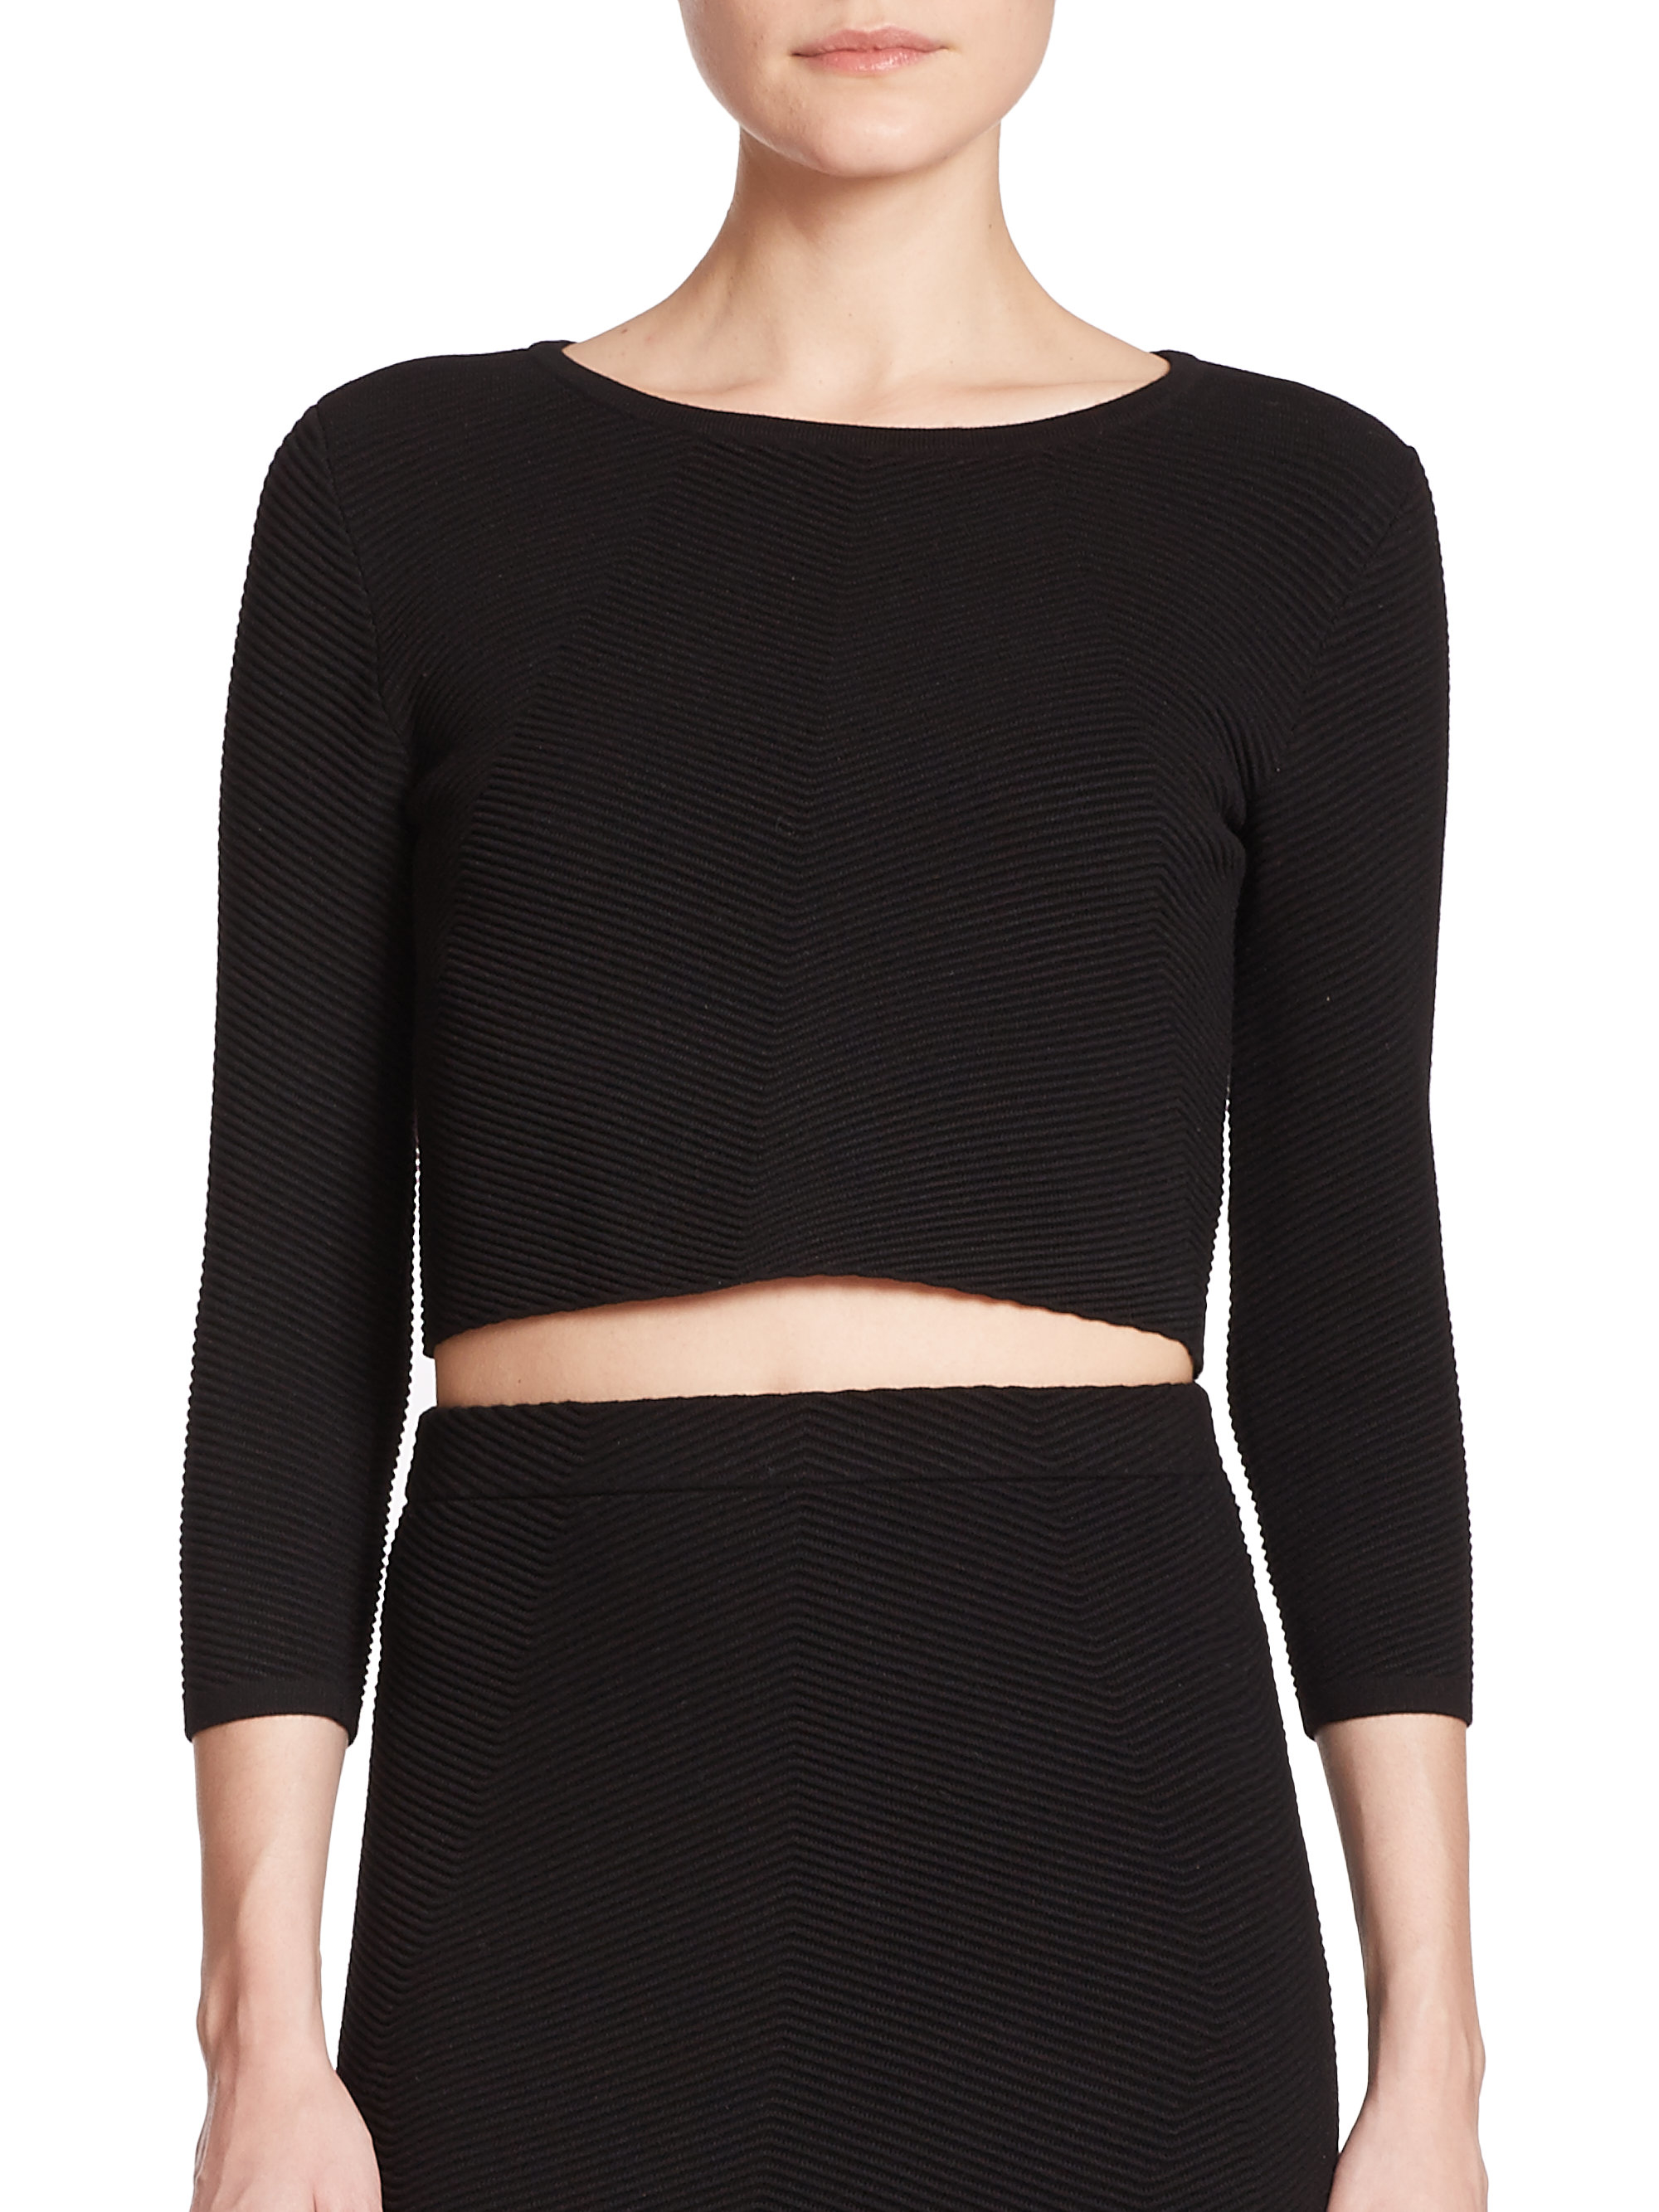 Rebecca minkoff Aria Cropped Ribbed Sweater in Black | Lyst